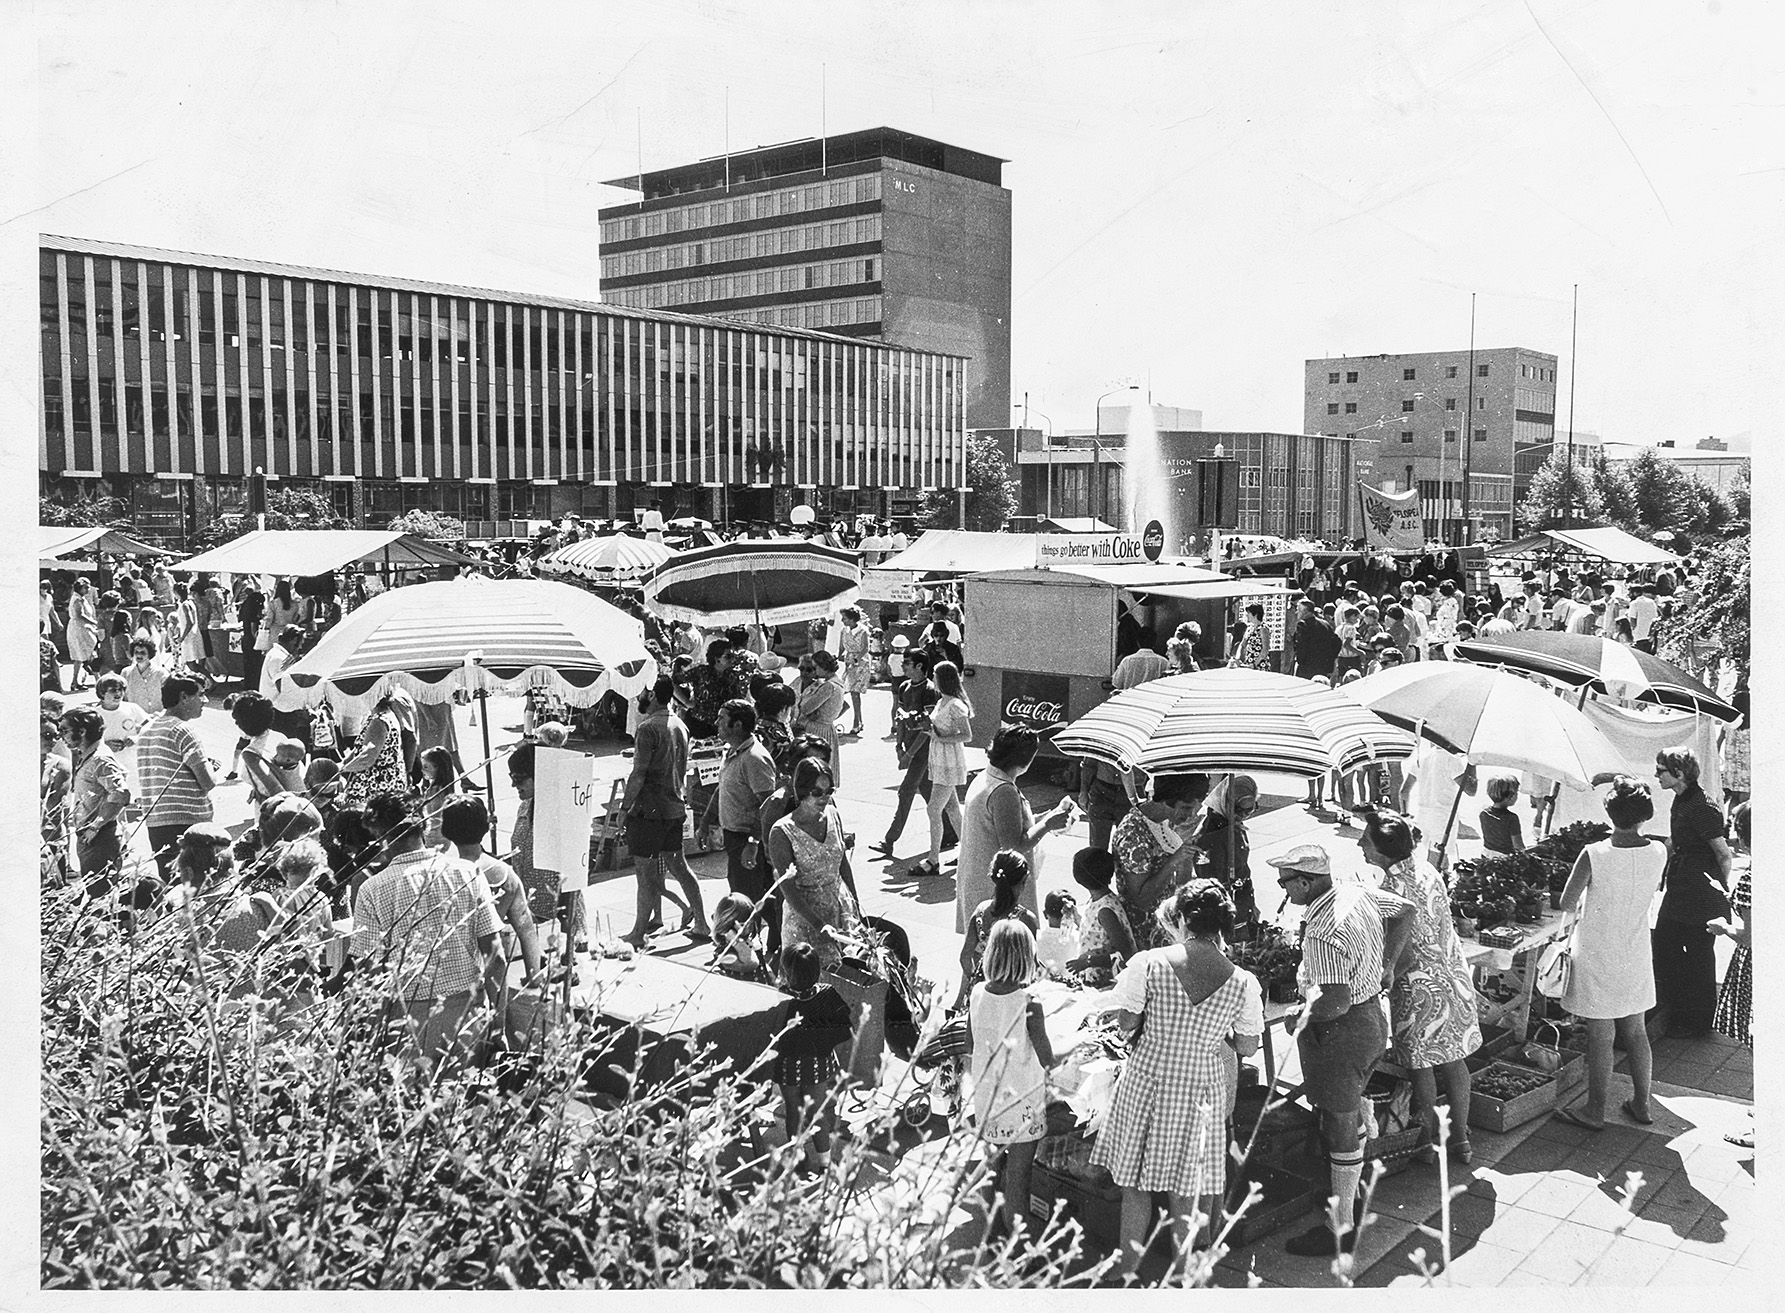 sun umbrellas and a crowd gathered in a town square surrounded by 1960s 'administrative-style' civic architecture.